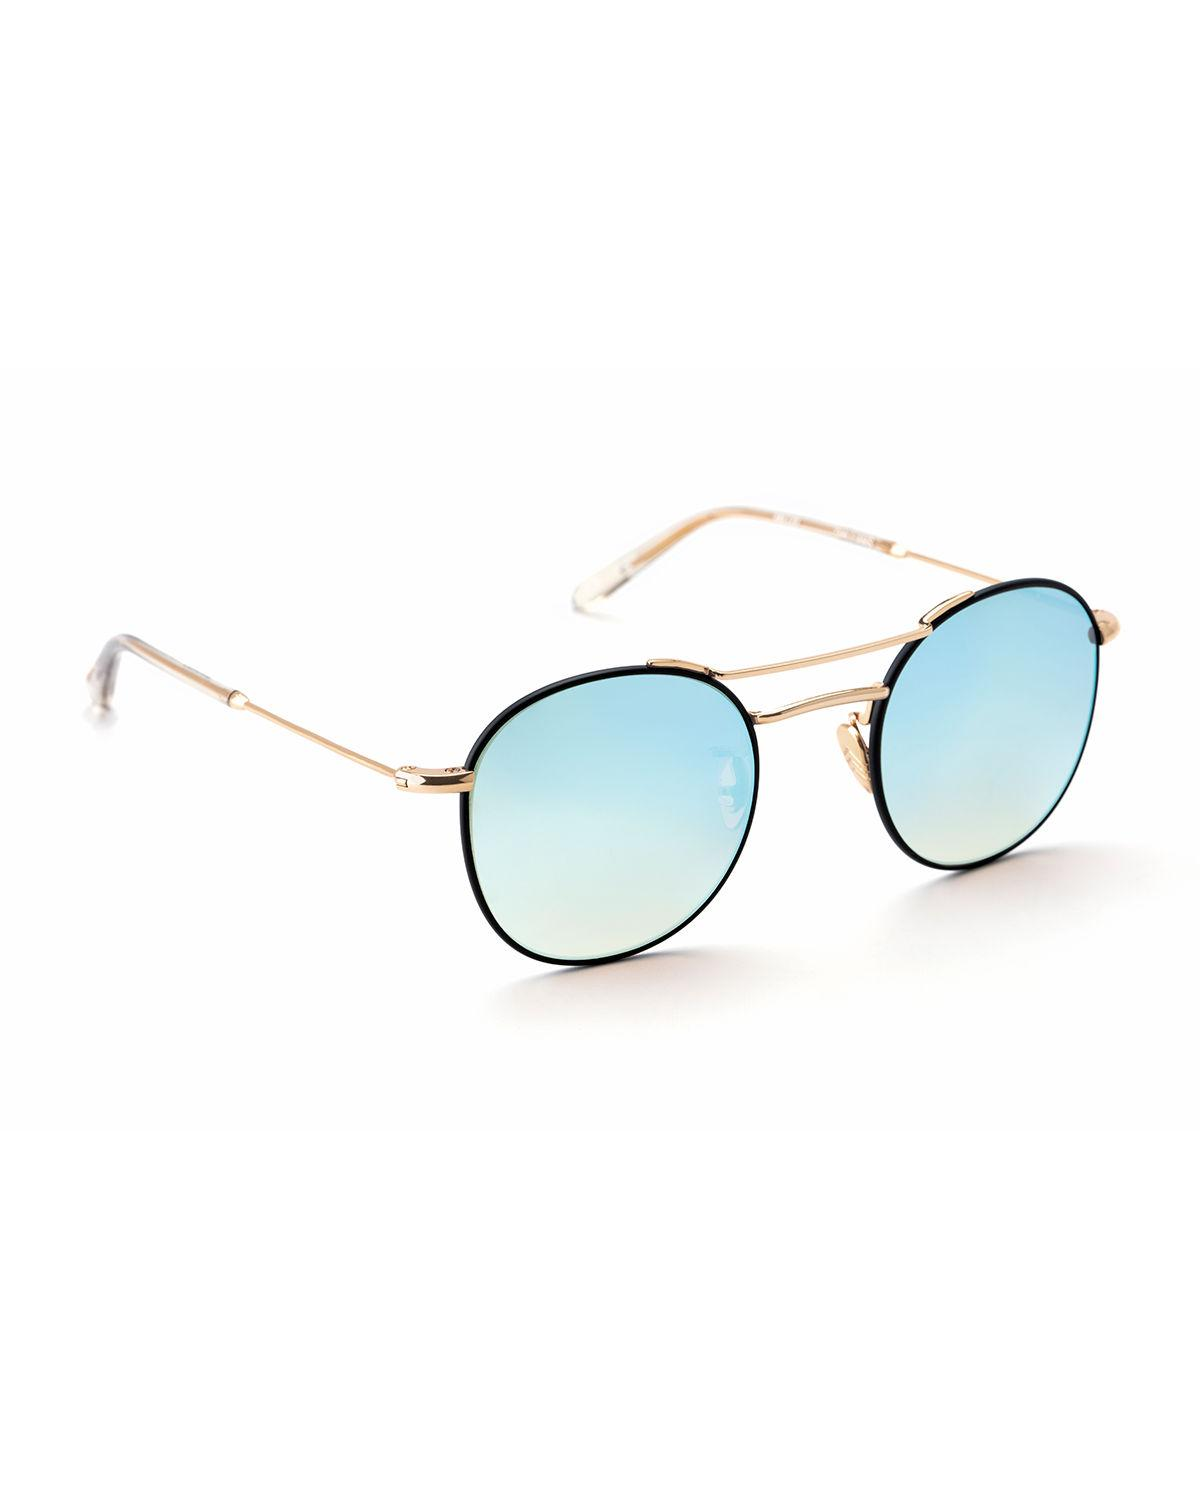 37414668bac3b Lyst - Krewe Orleans Round Mirrored Sunglasses in Blue